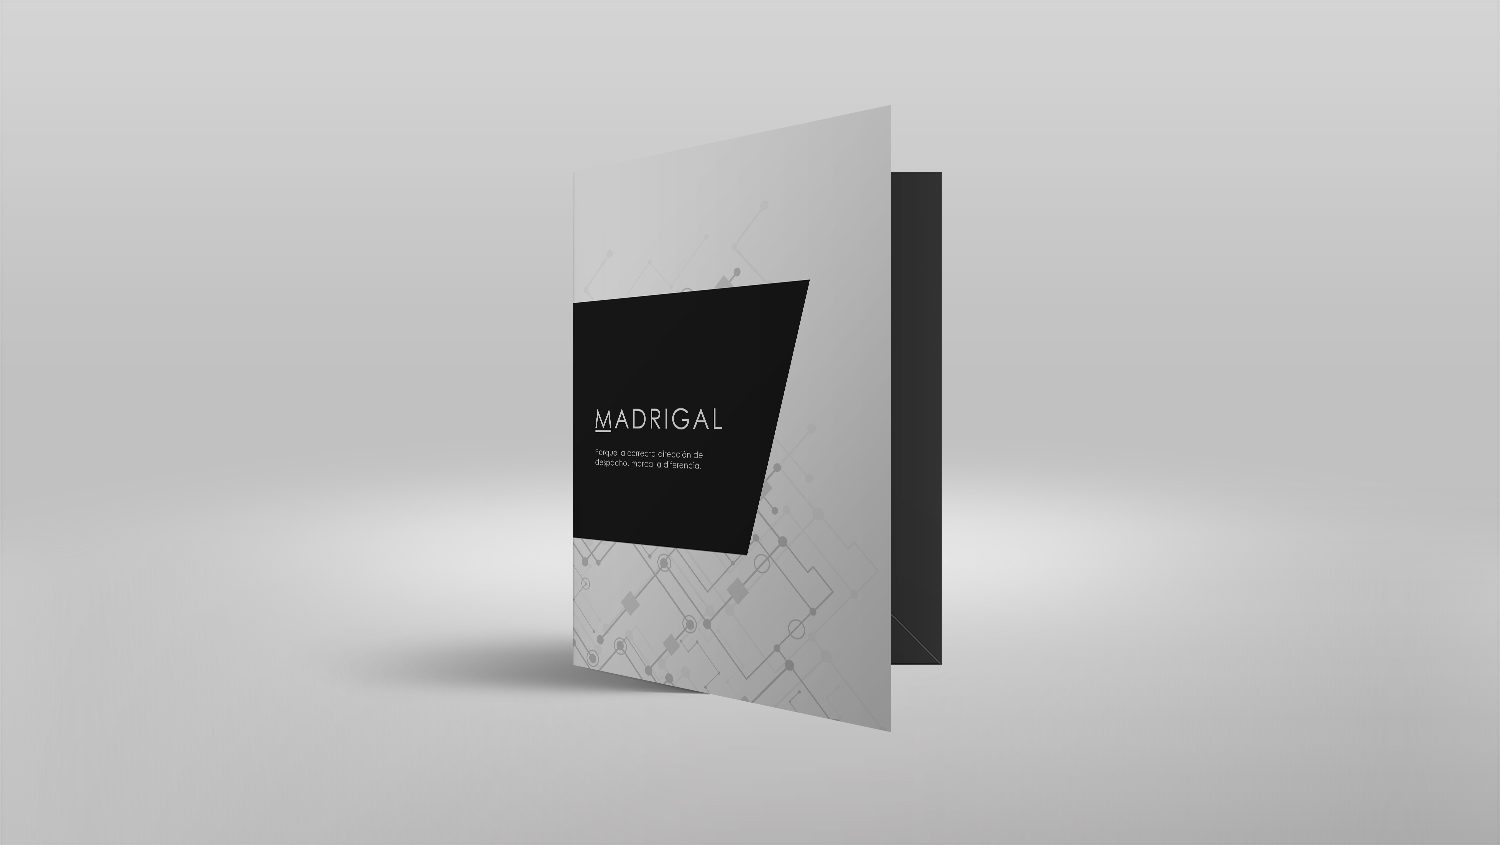 madrigal-carpeta-02